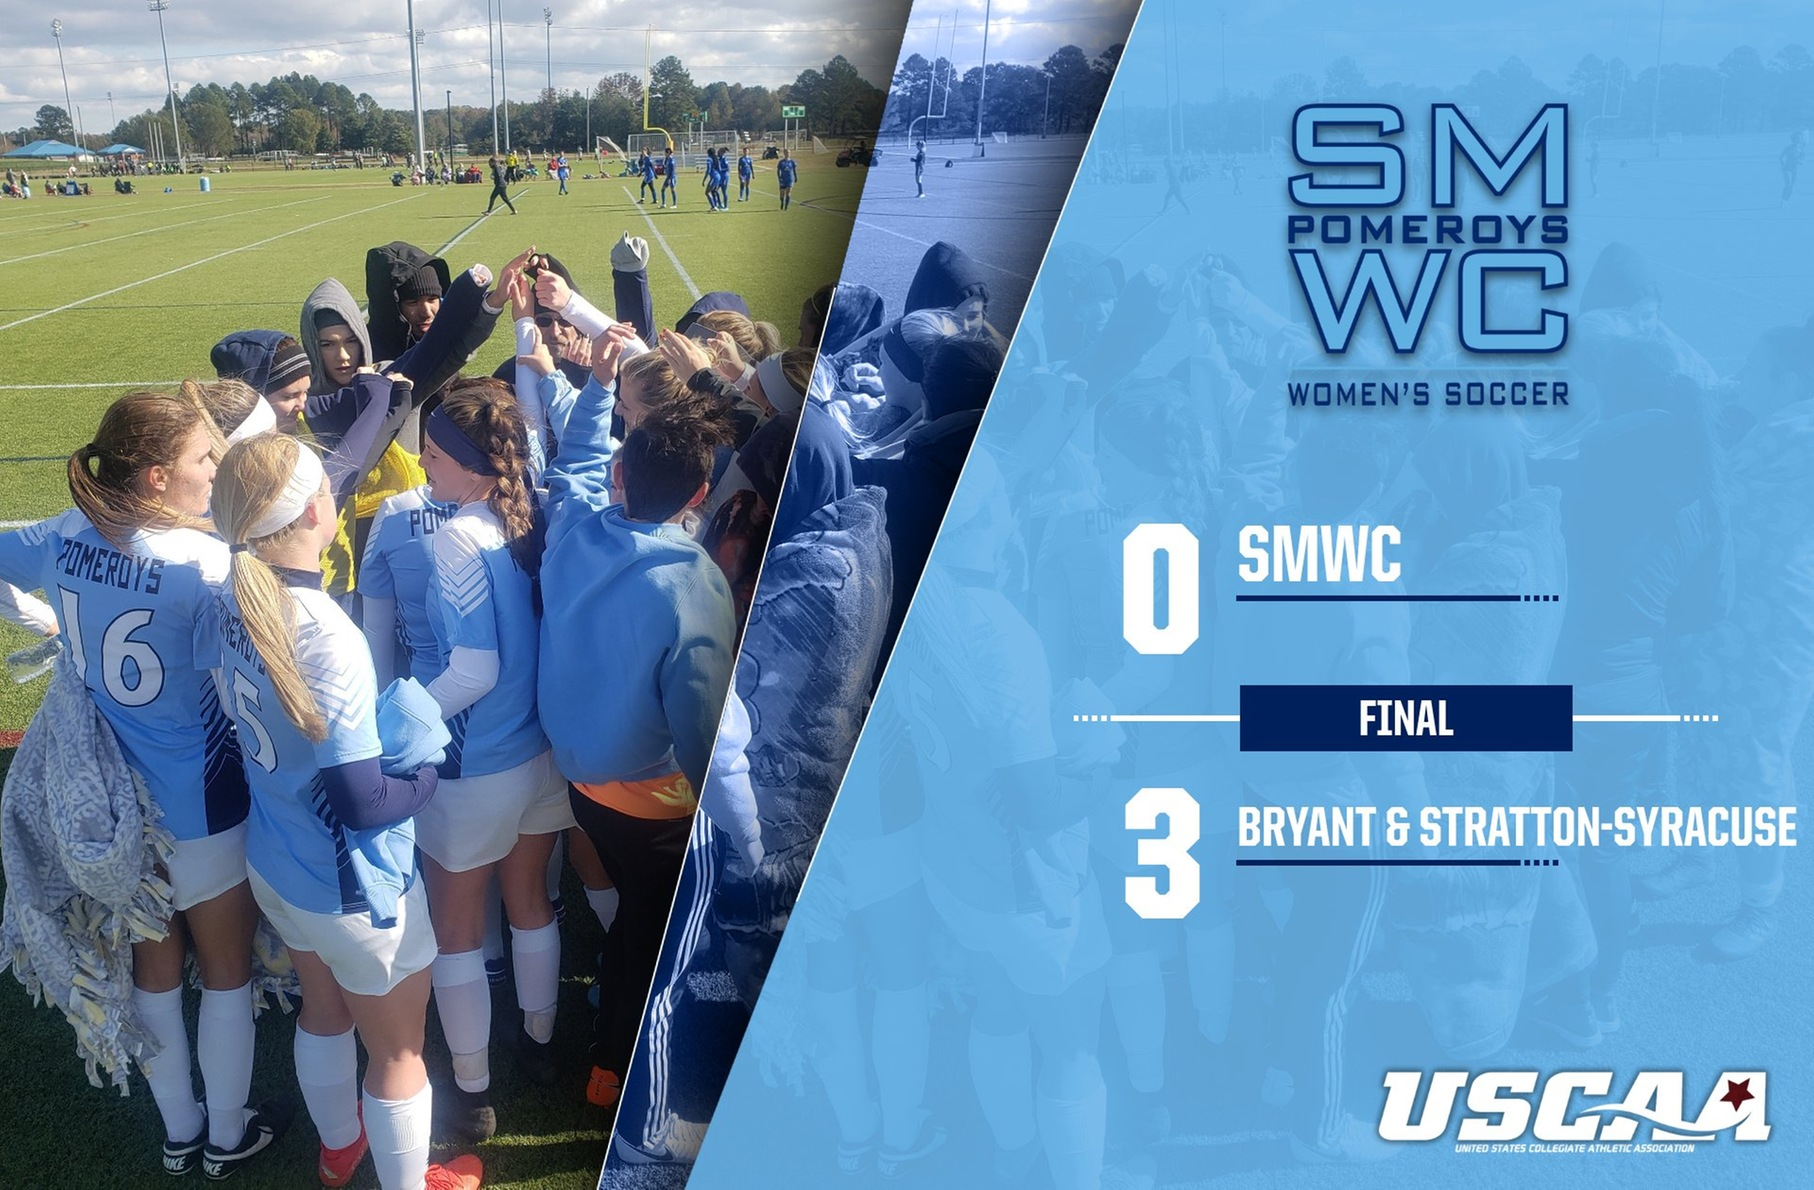 Women's Soccer Drops First Game 3-0 to Bryant & Stratton-Syracuse